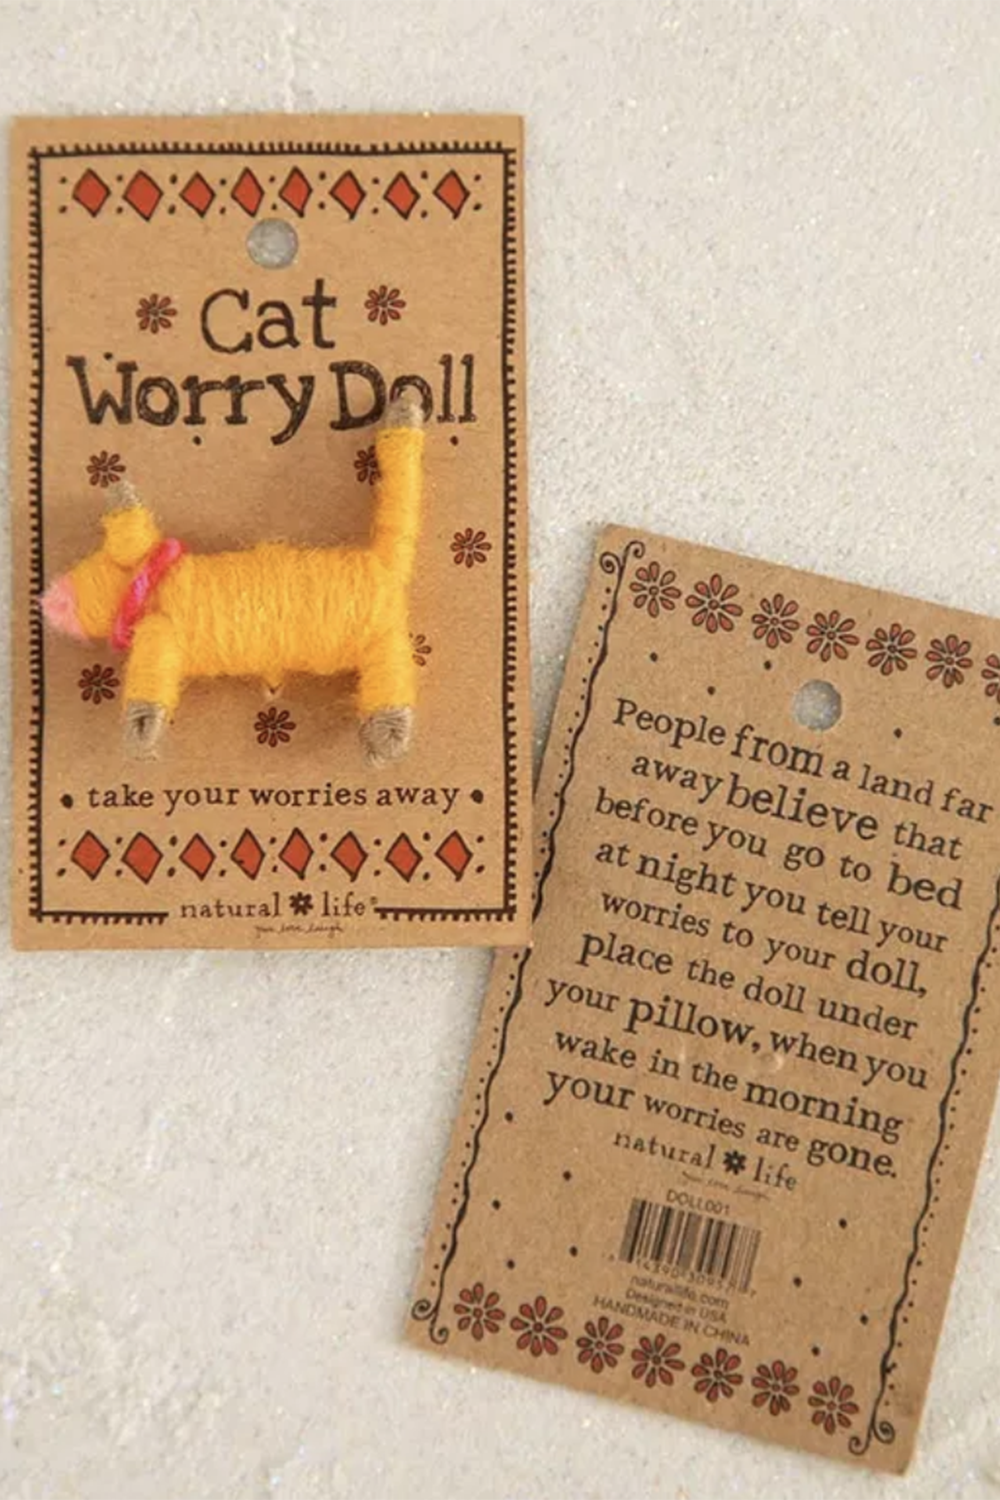 Worry Doll - Cat